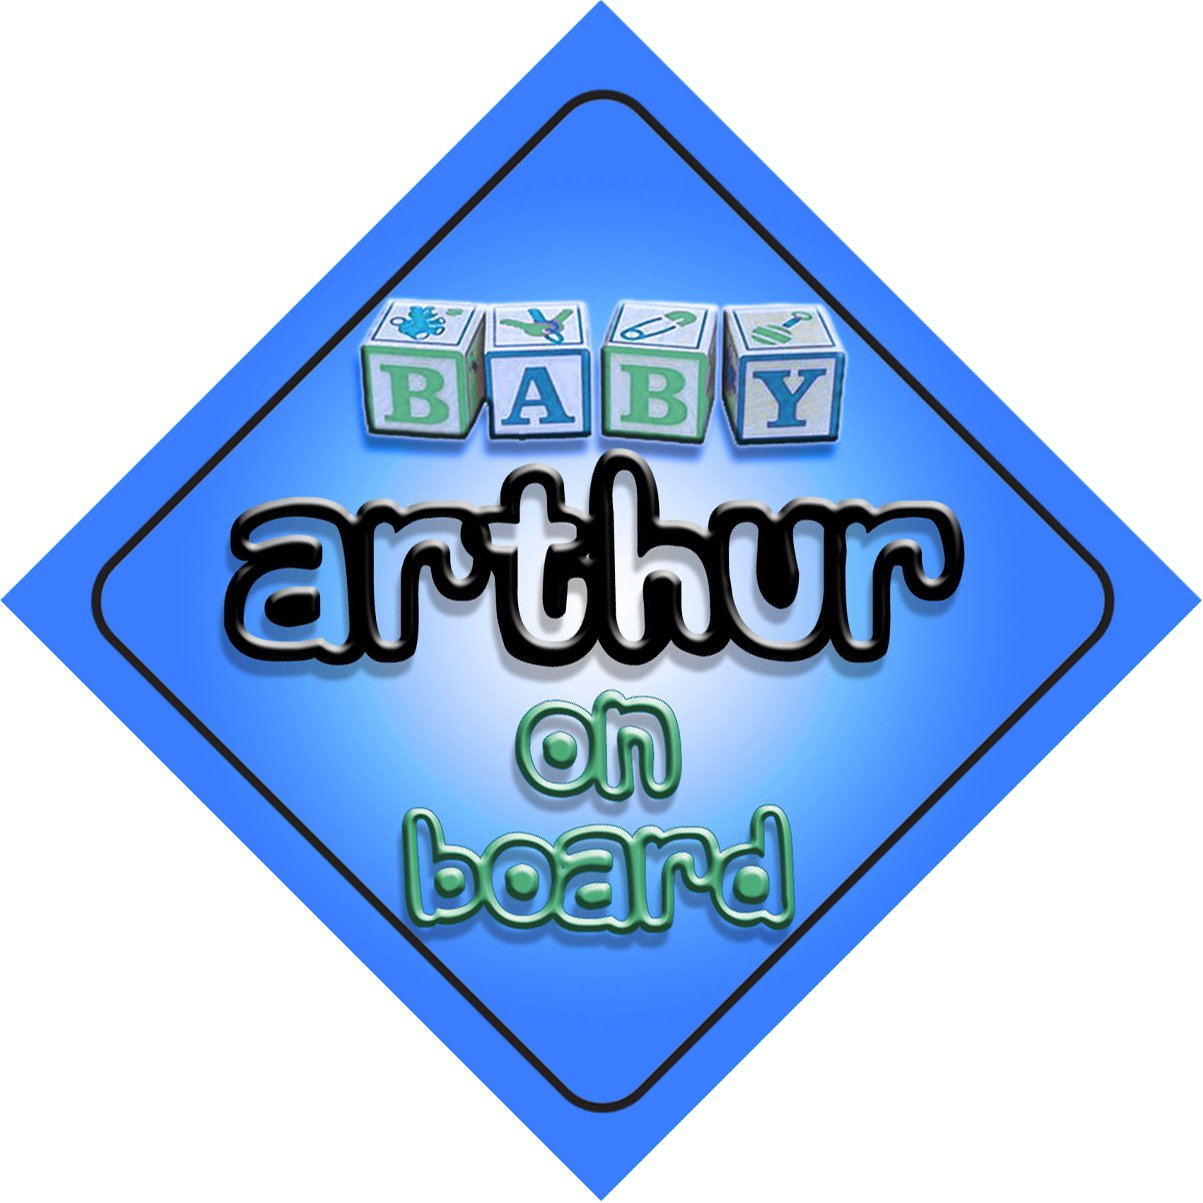 Baby Boy Arthur on board novelty car sign gift//present for new child//newborn baby